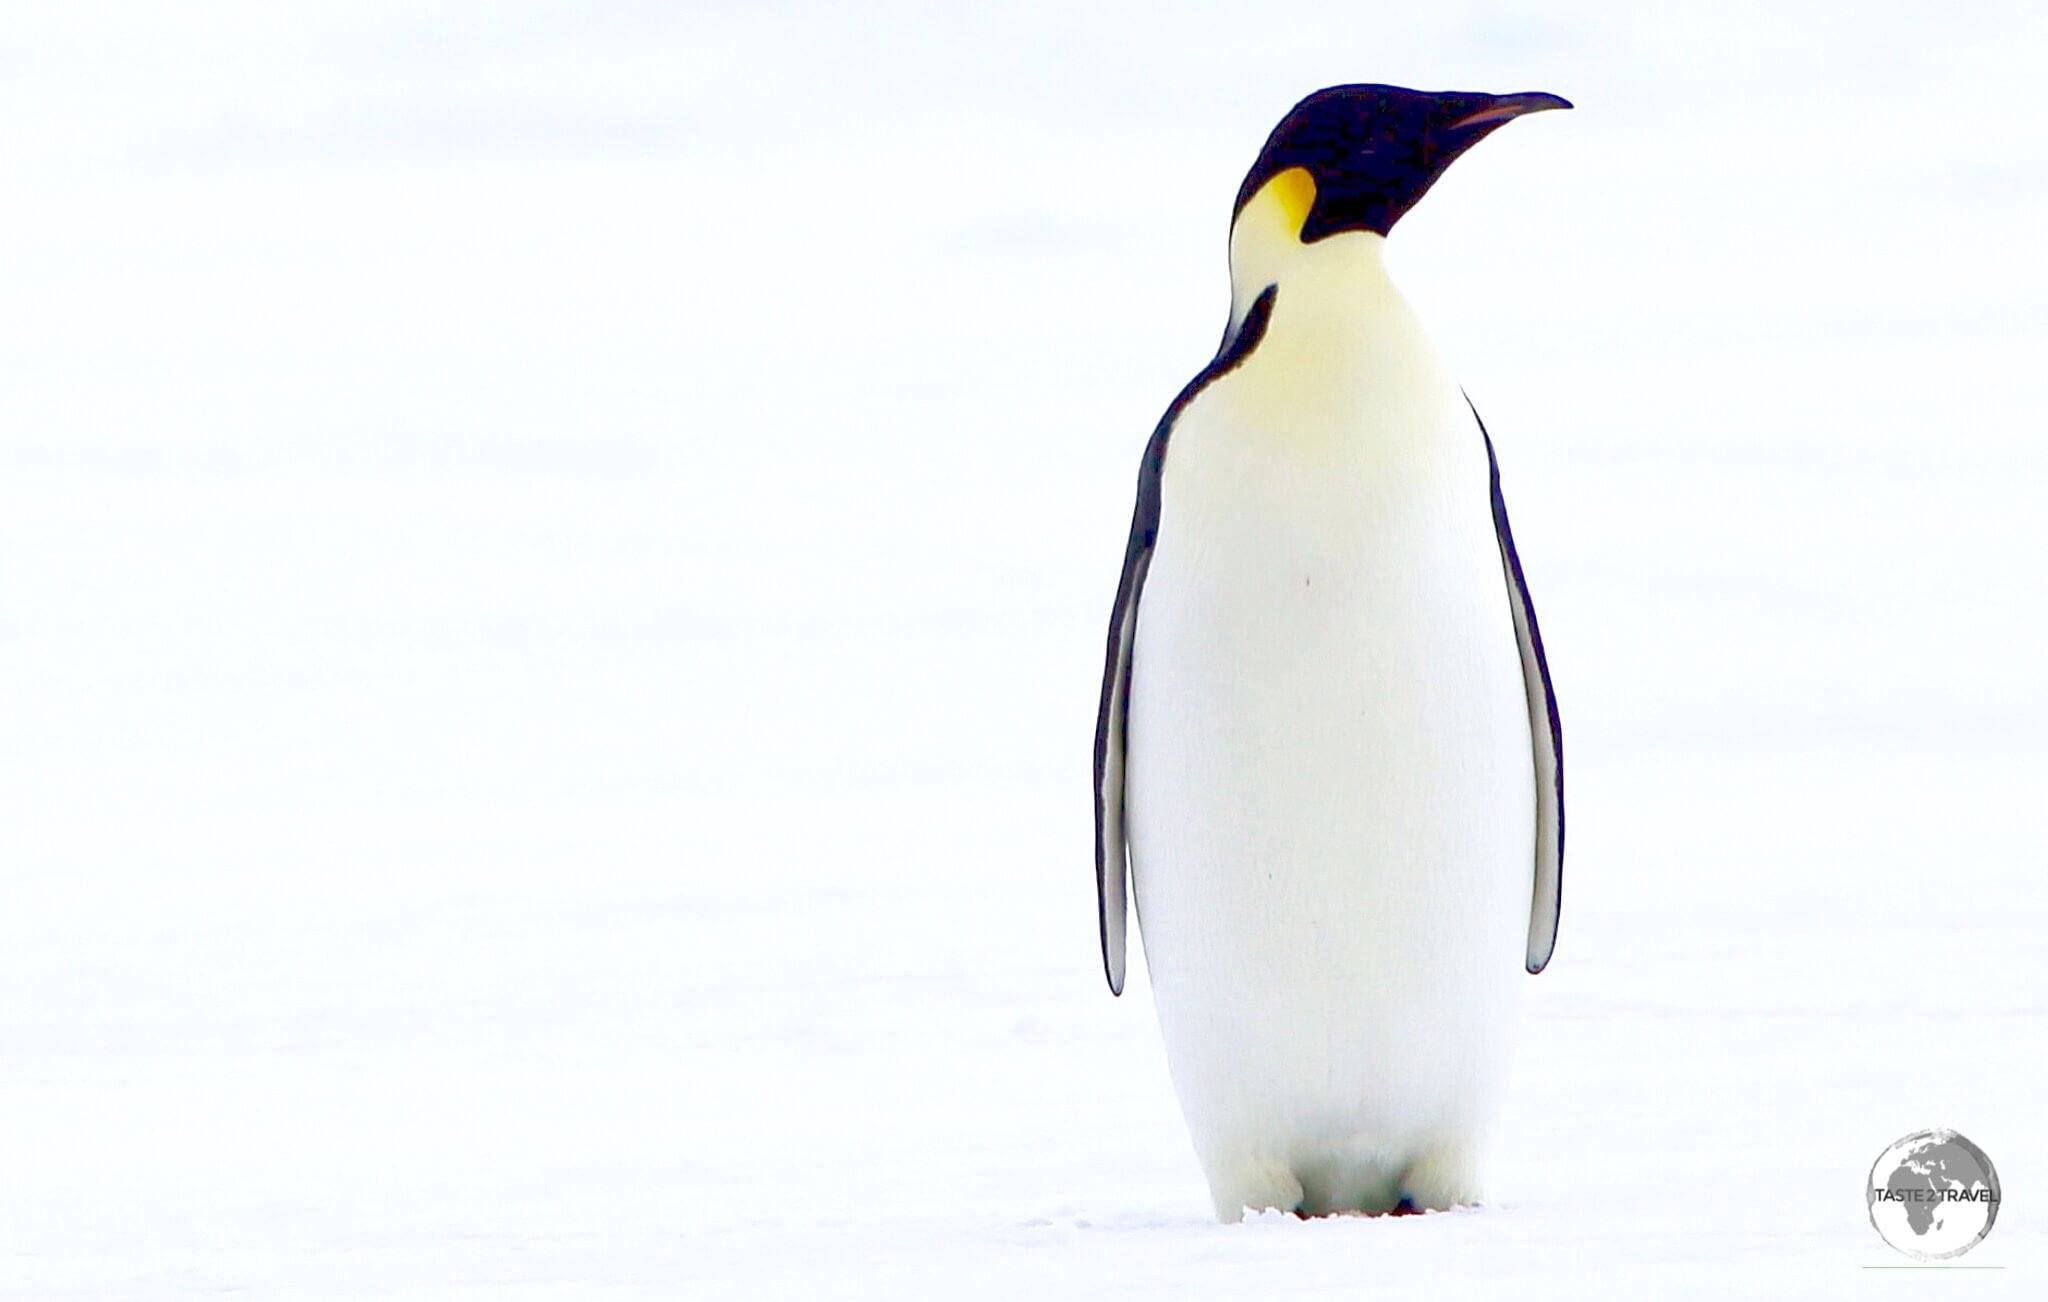 The Emperor penguin is easily distinguished thanks to the broad yellow patches on each side of its head.